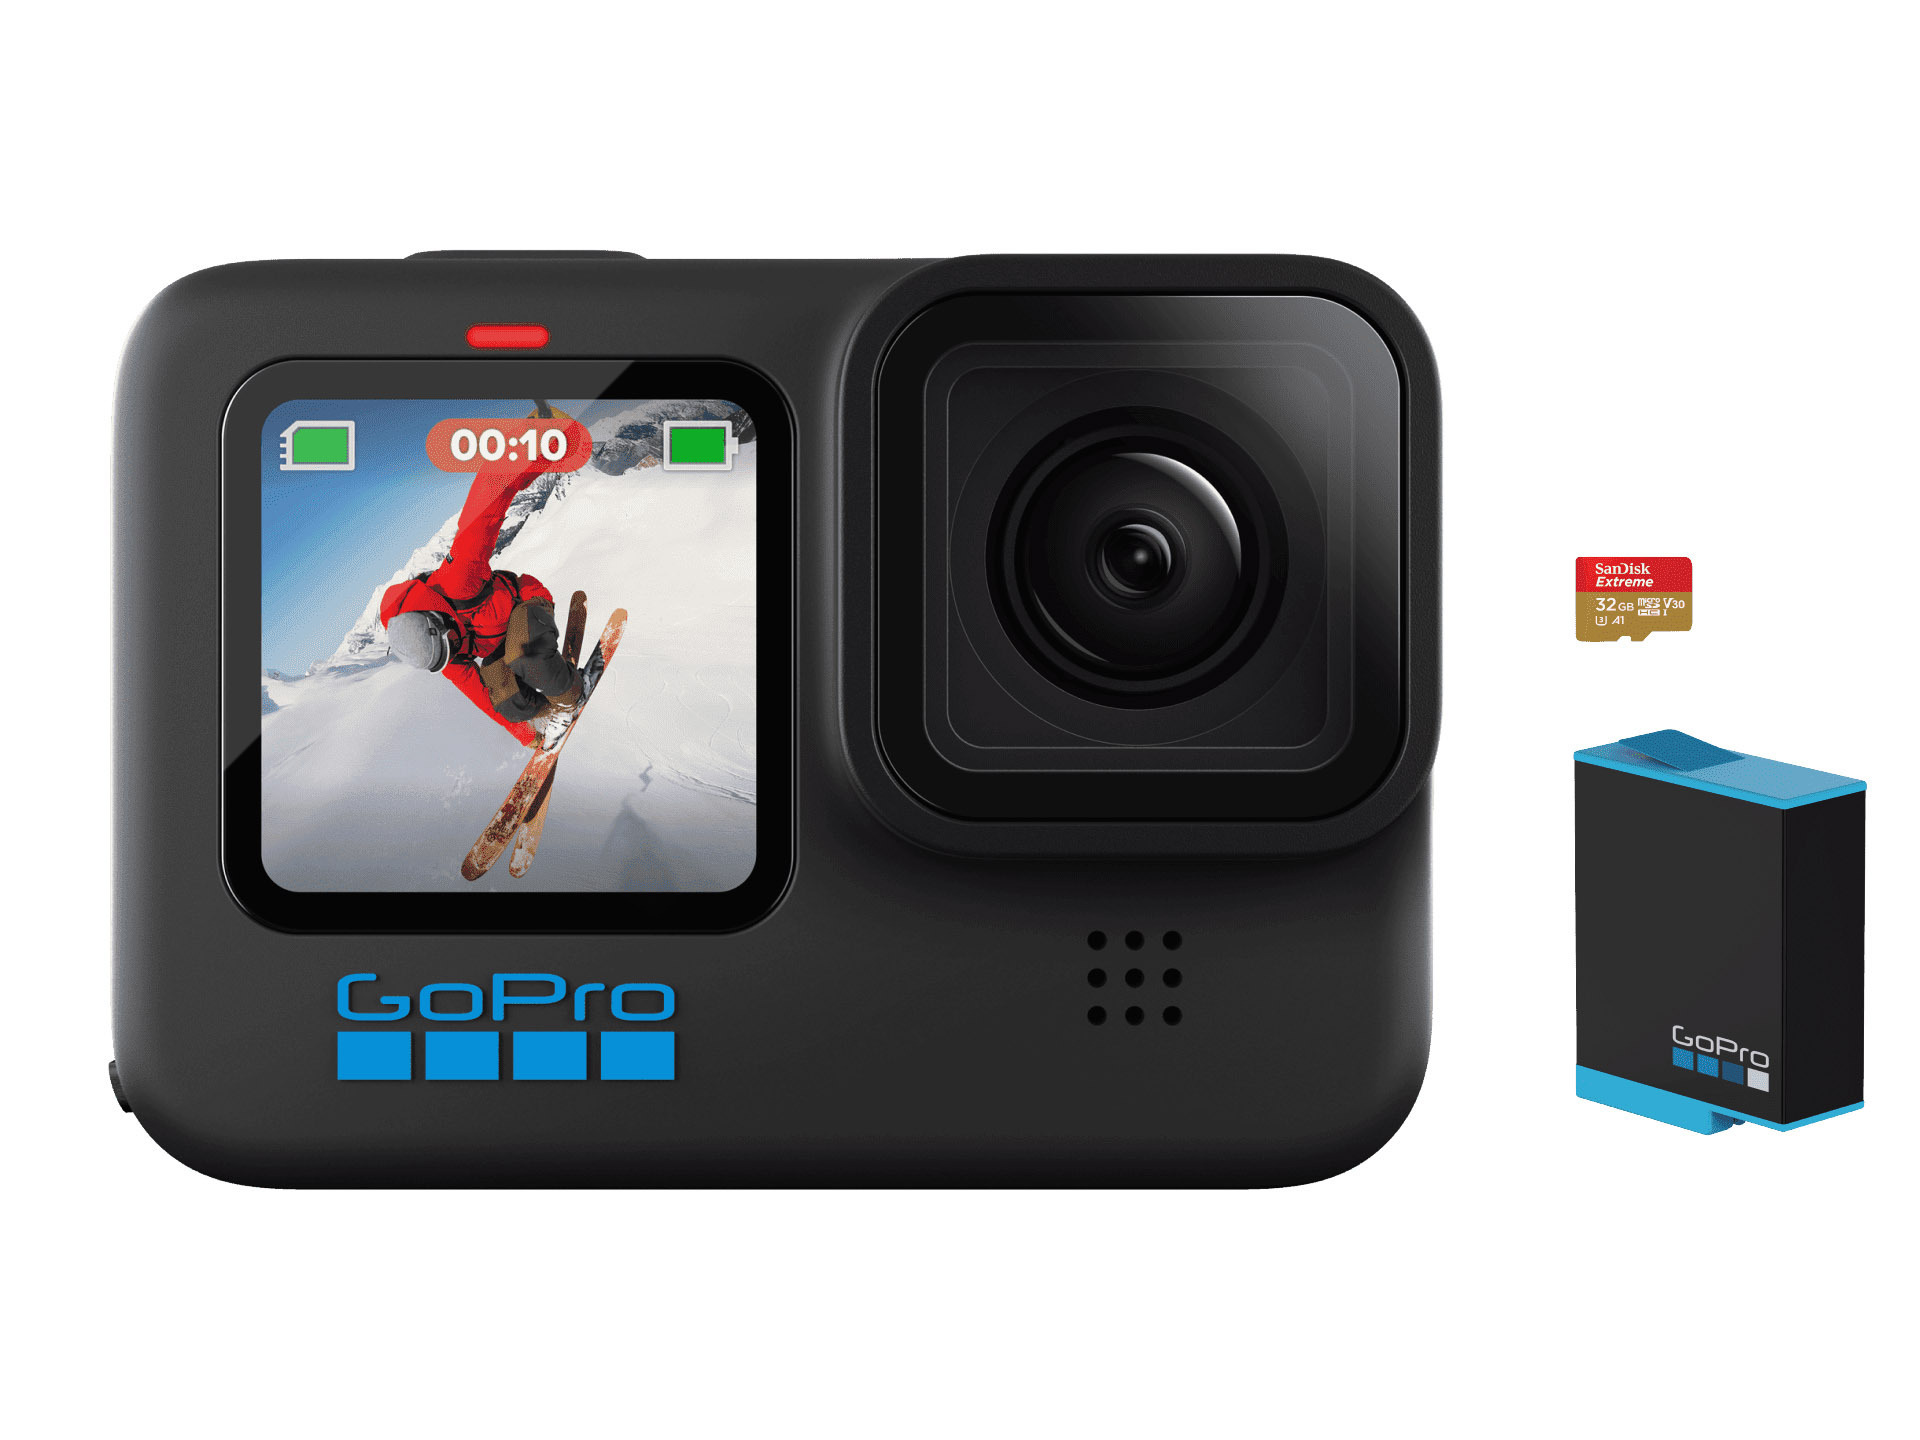 GoPro Turns 10 – Our First Look At The Latest GoPro HERO 10